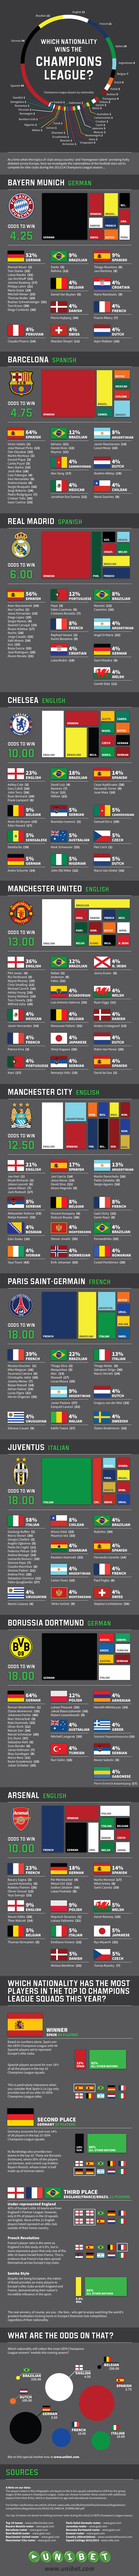 Champions League 2014 Clubs-Infographic